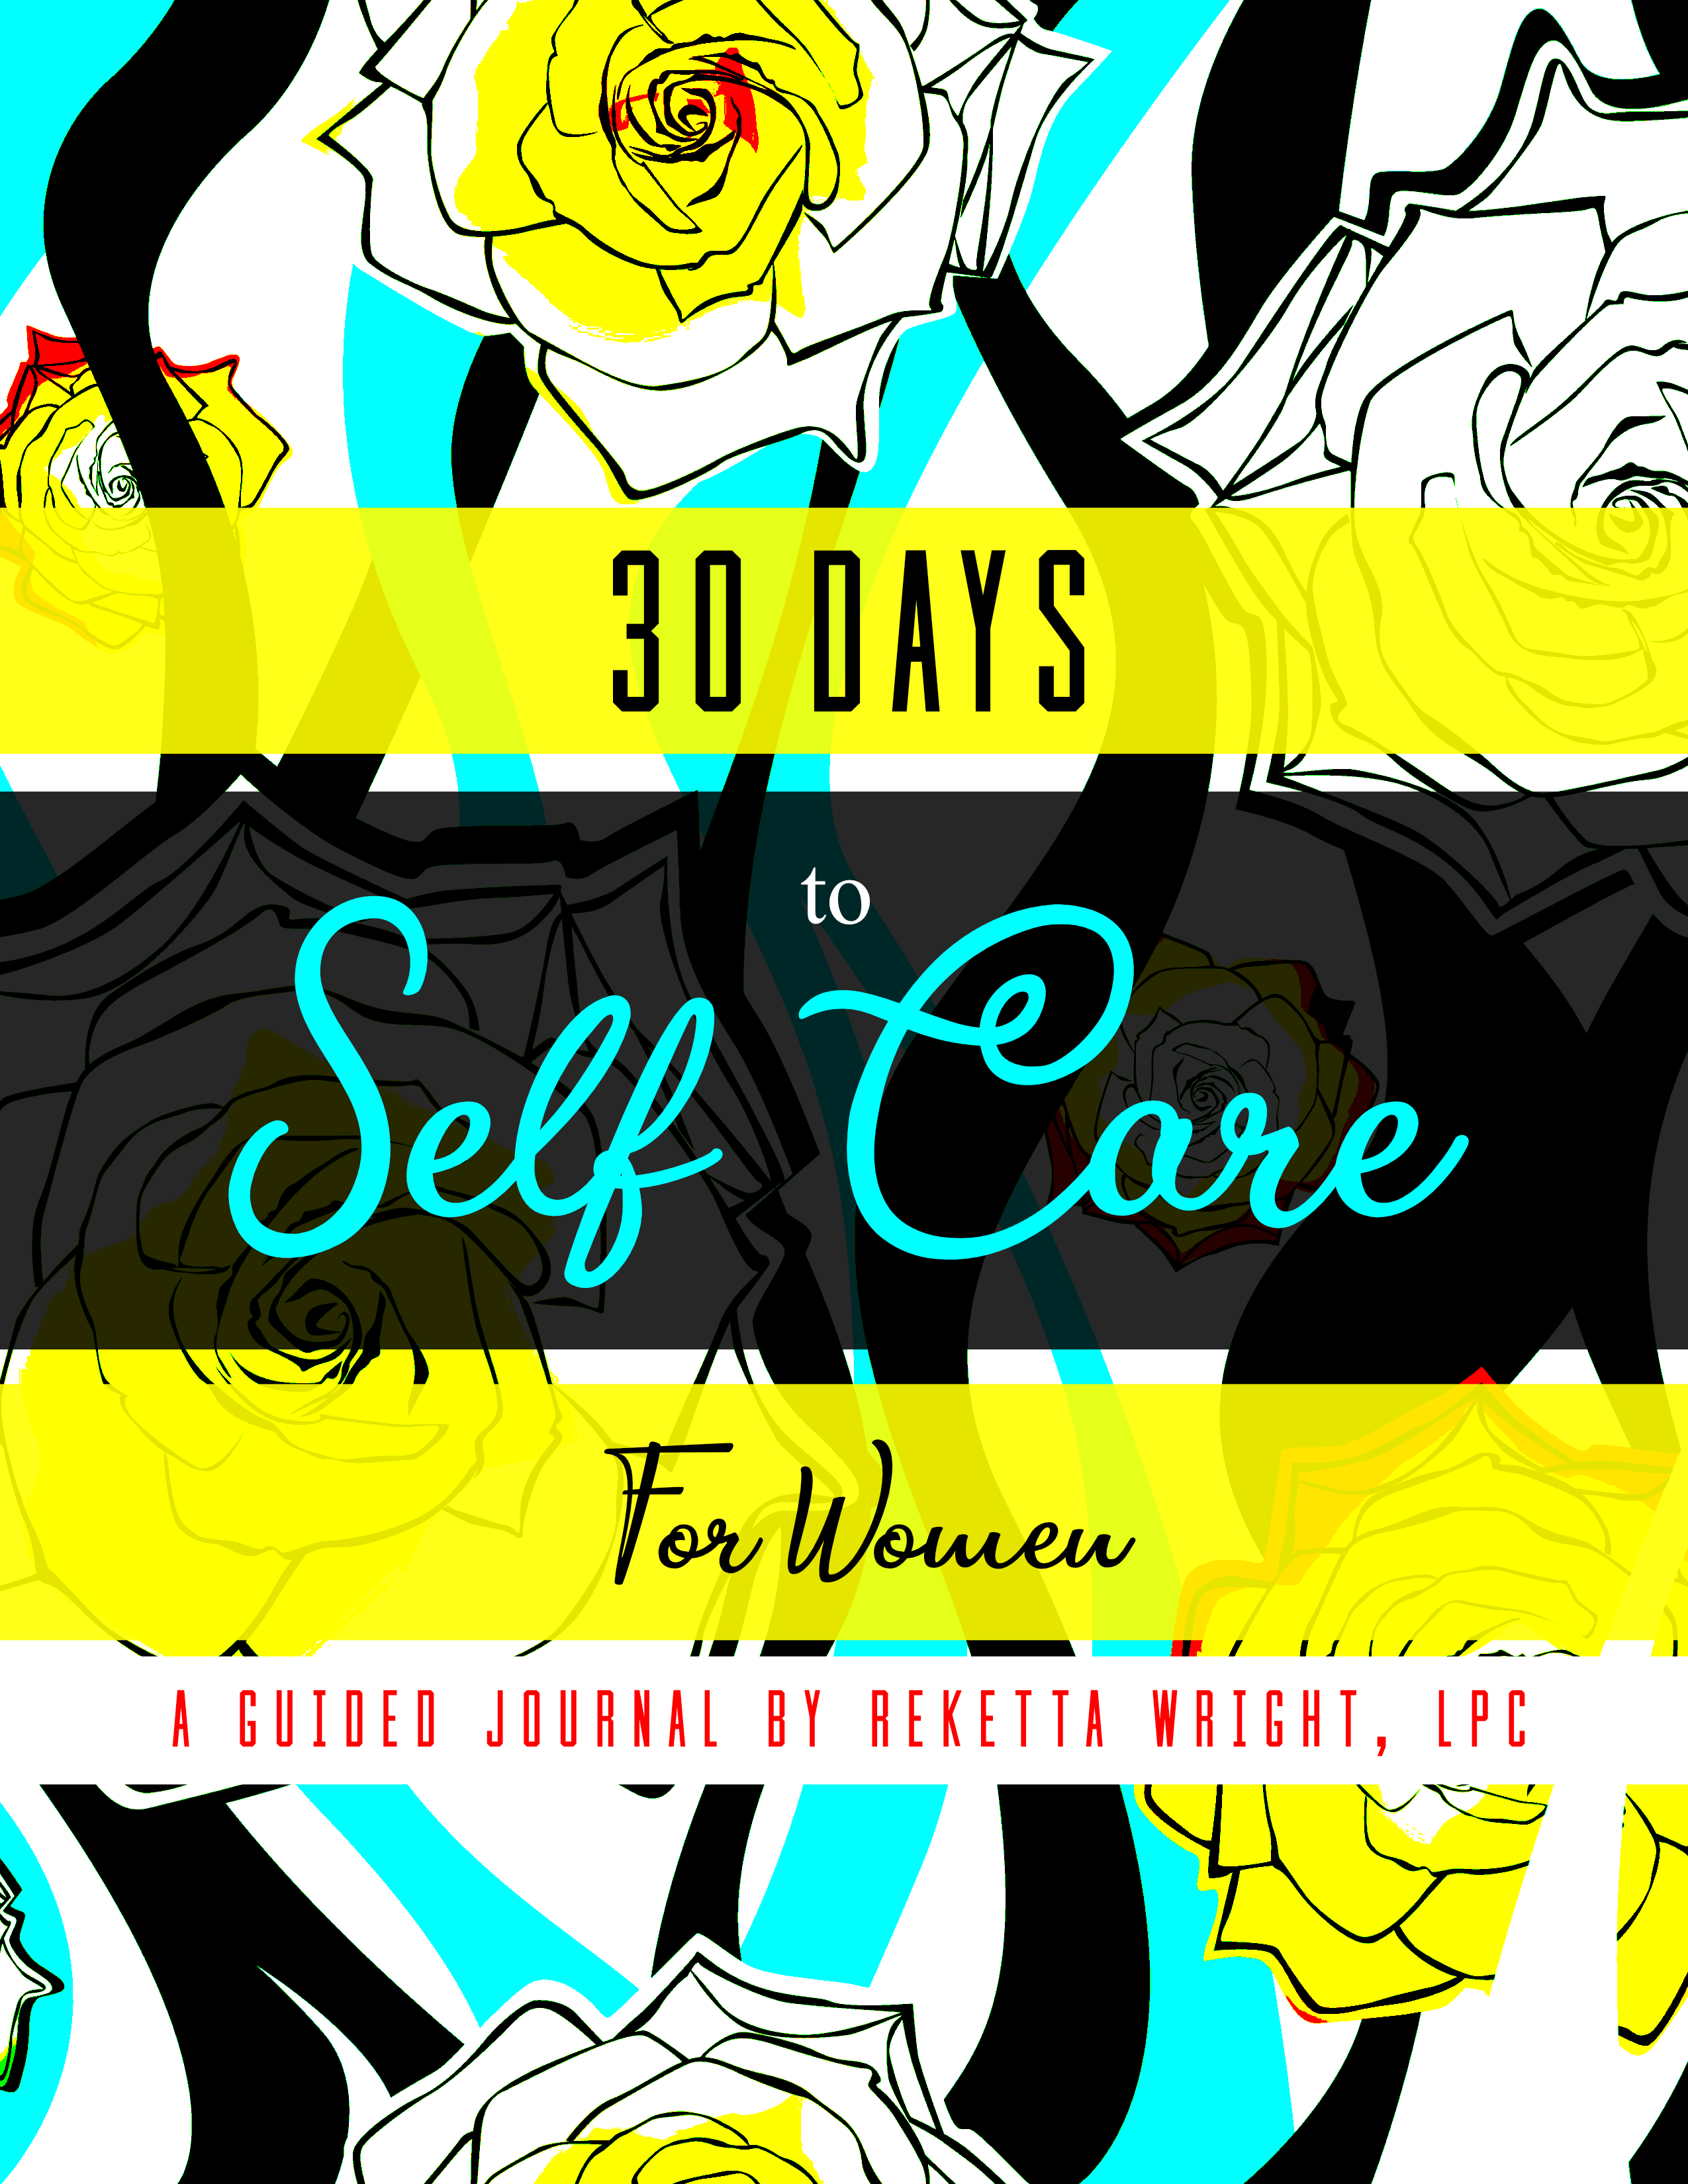 30 Days to Self Care for Women